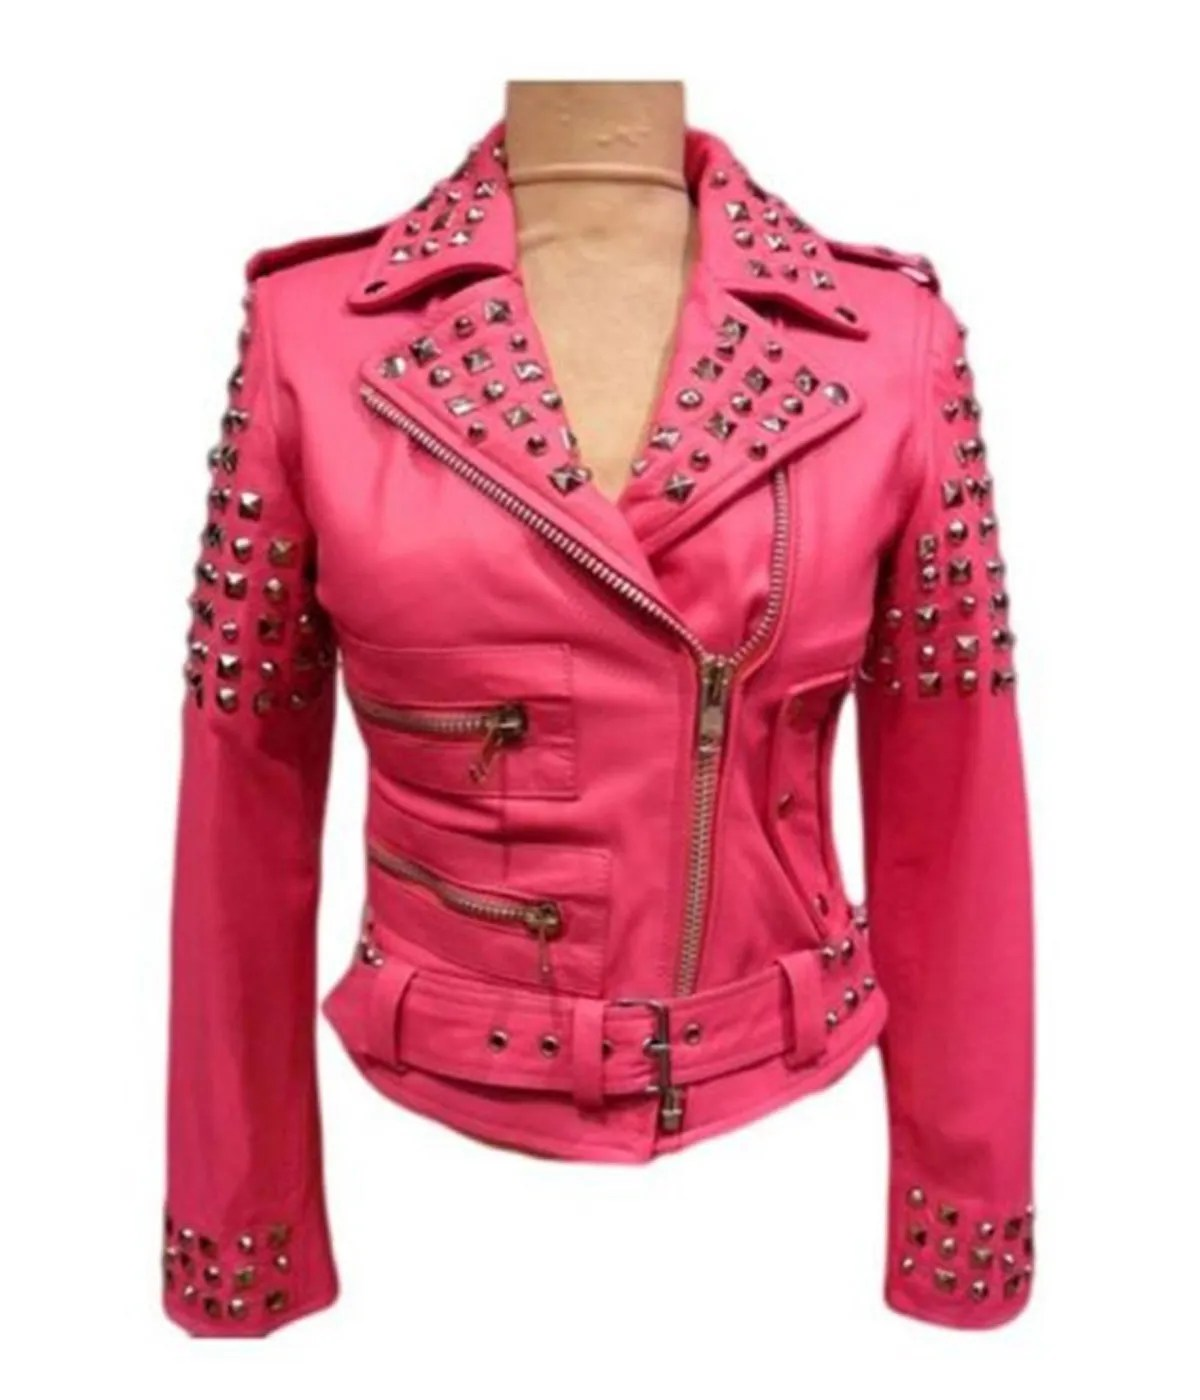 womens-studded-pink-leather-jacket